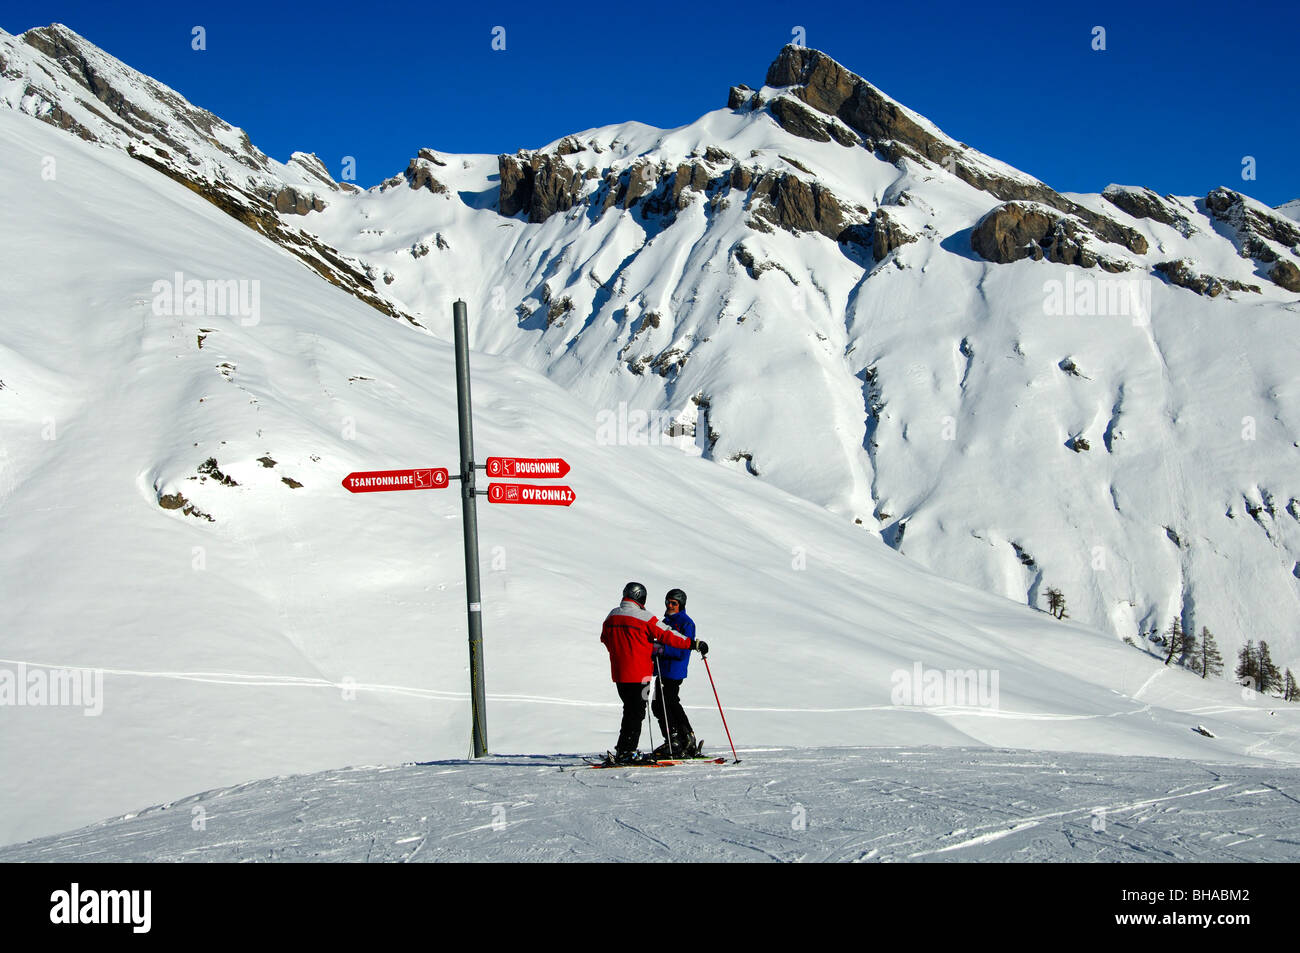 Two skiers standing at a directional sign in the skiing area Ovronnaz, Valais, Switzerland - Stock Image